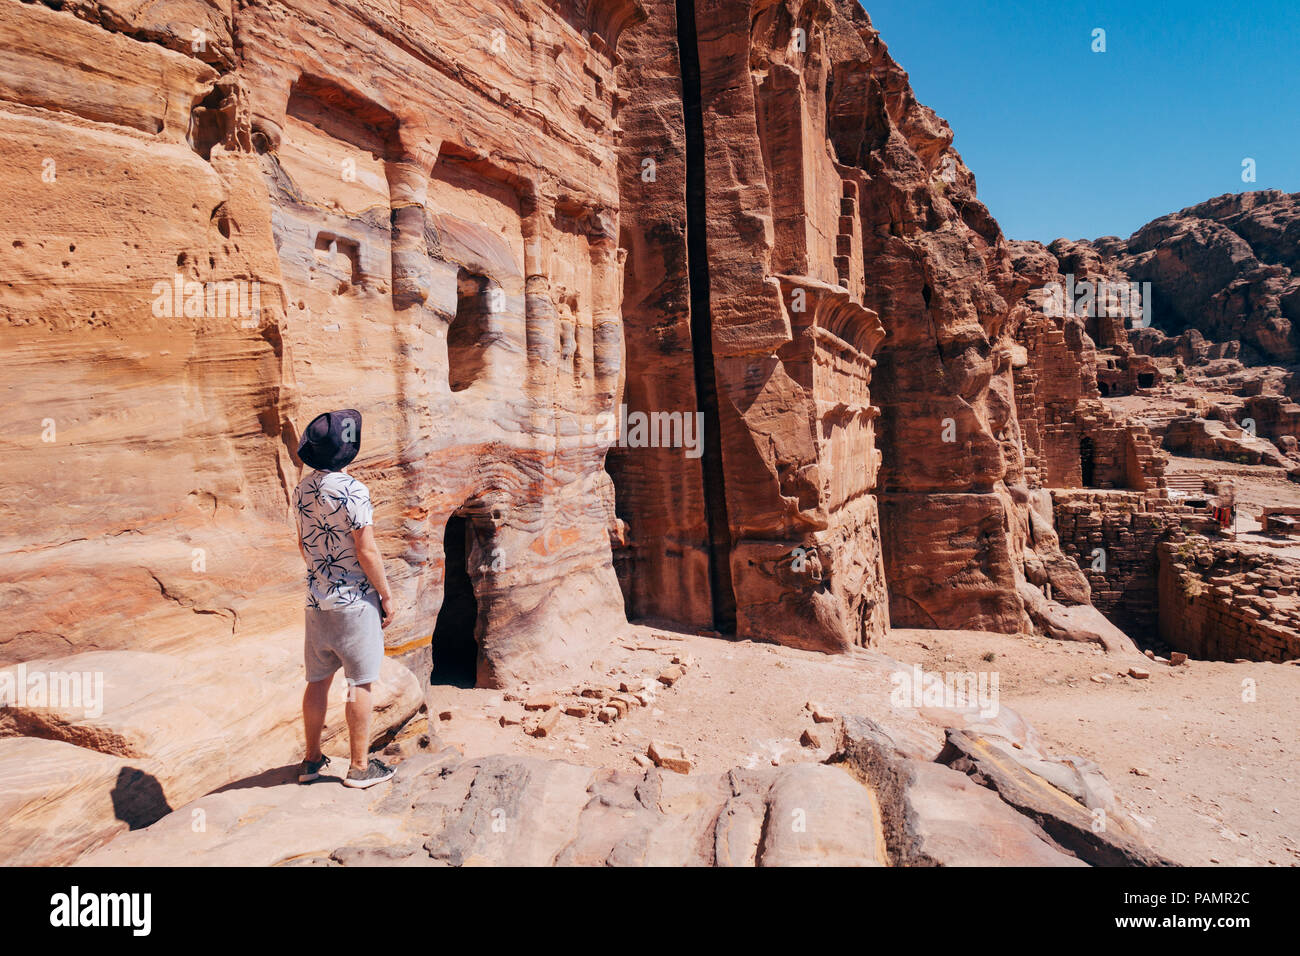 a tourist poses on a rock ledge looking over a tomb entrance in the Lost City of Petra, Jordan - Stock Image